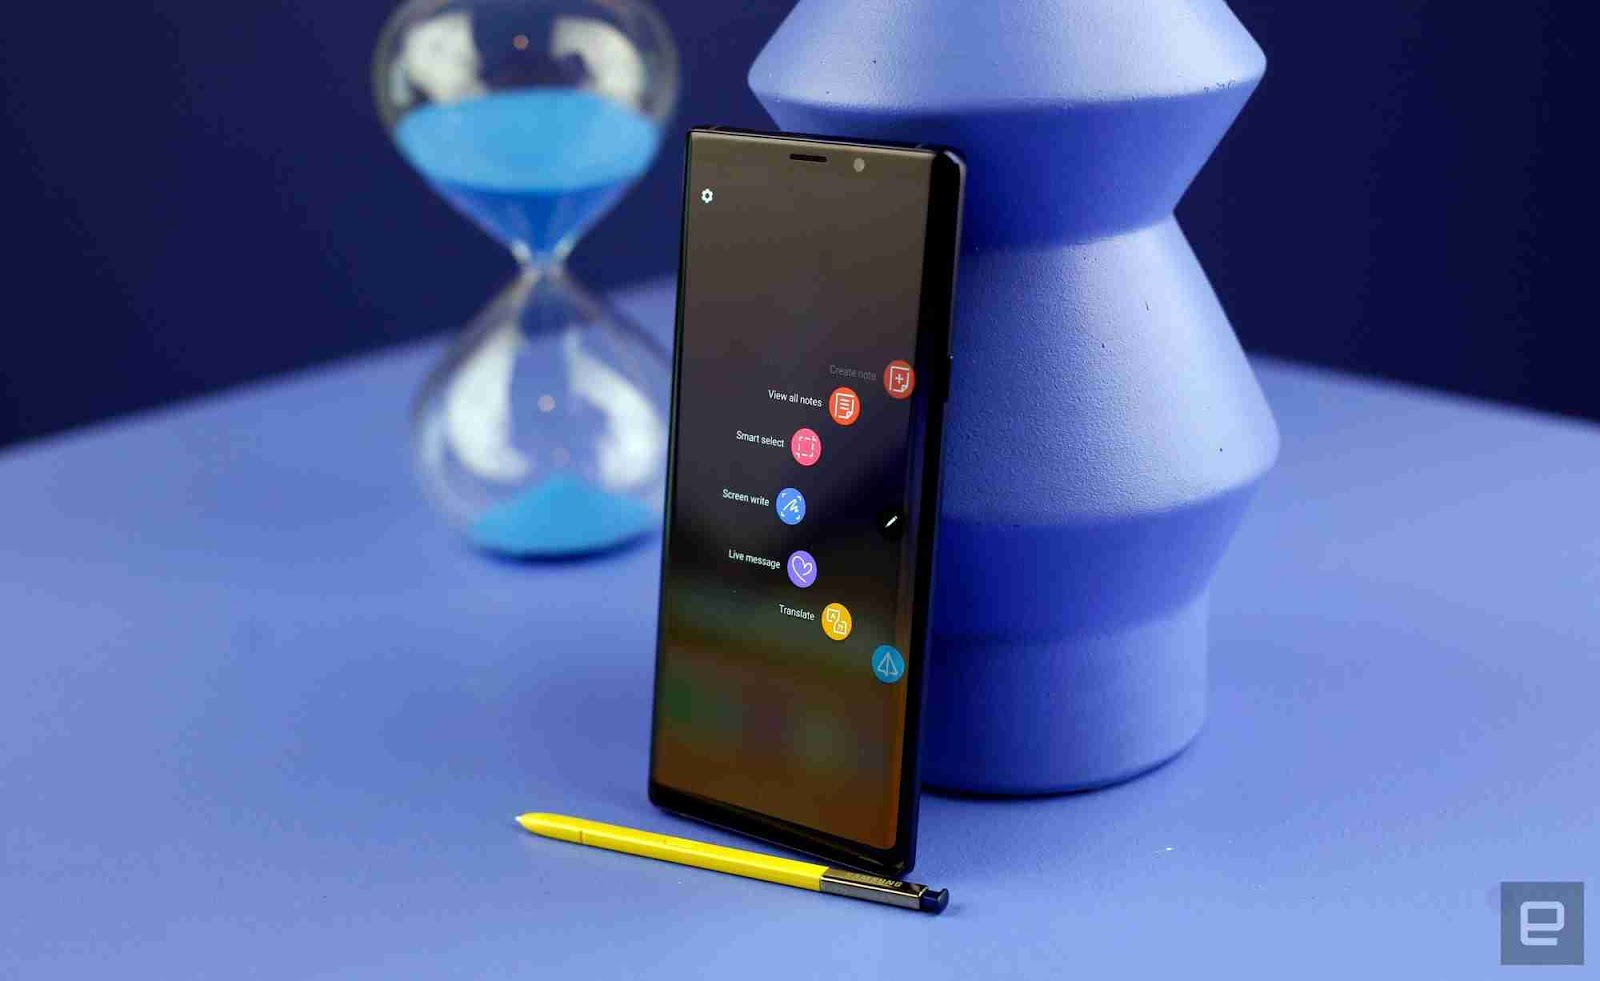 The Samsung Galaxy Note 9 and Its Remote Control S-Pen